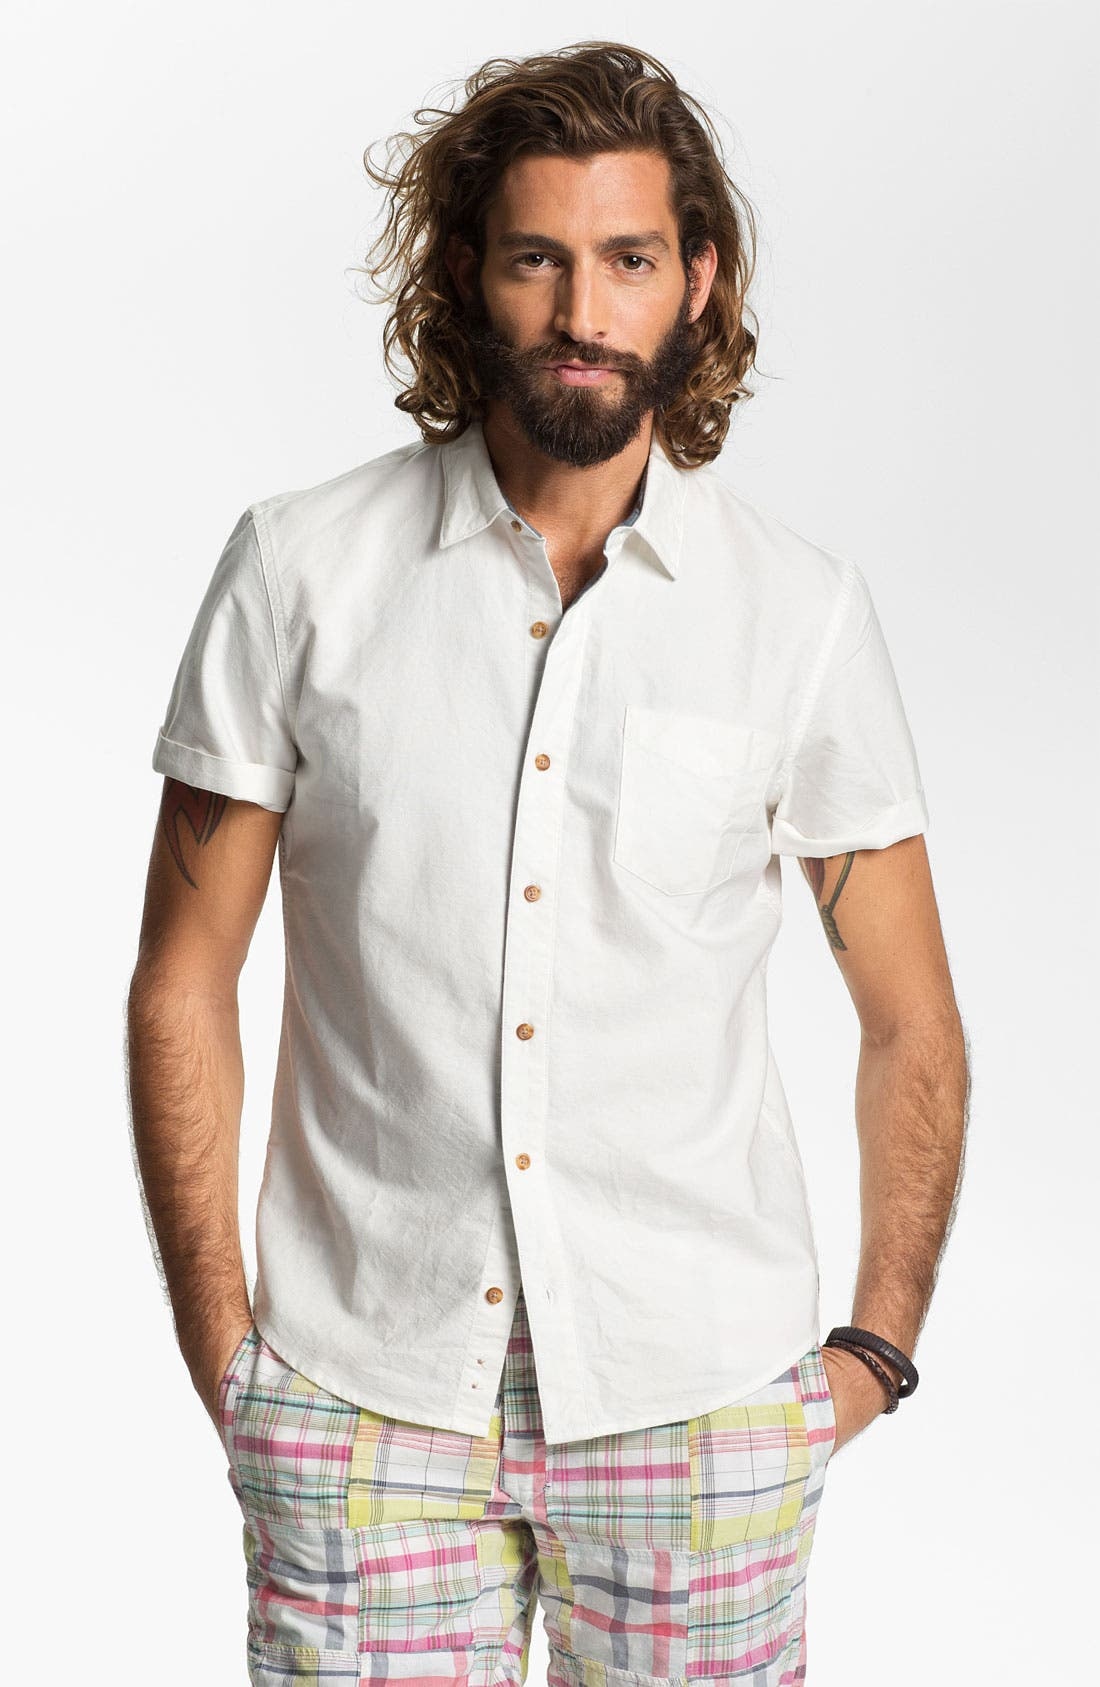 Alternate Image 1 Selected - 1901 Trim Fit Short Sleeve Oxford Sport Shirt